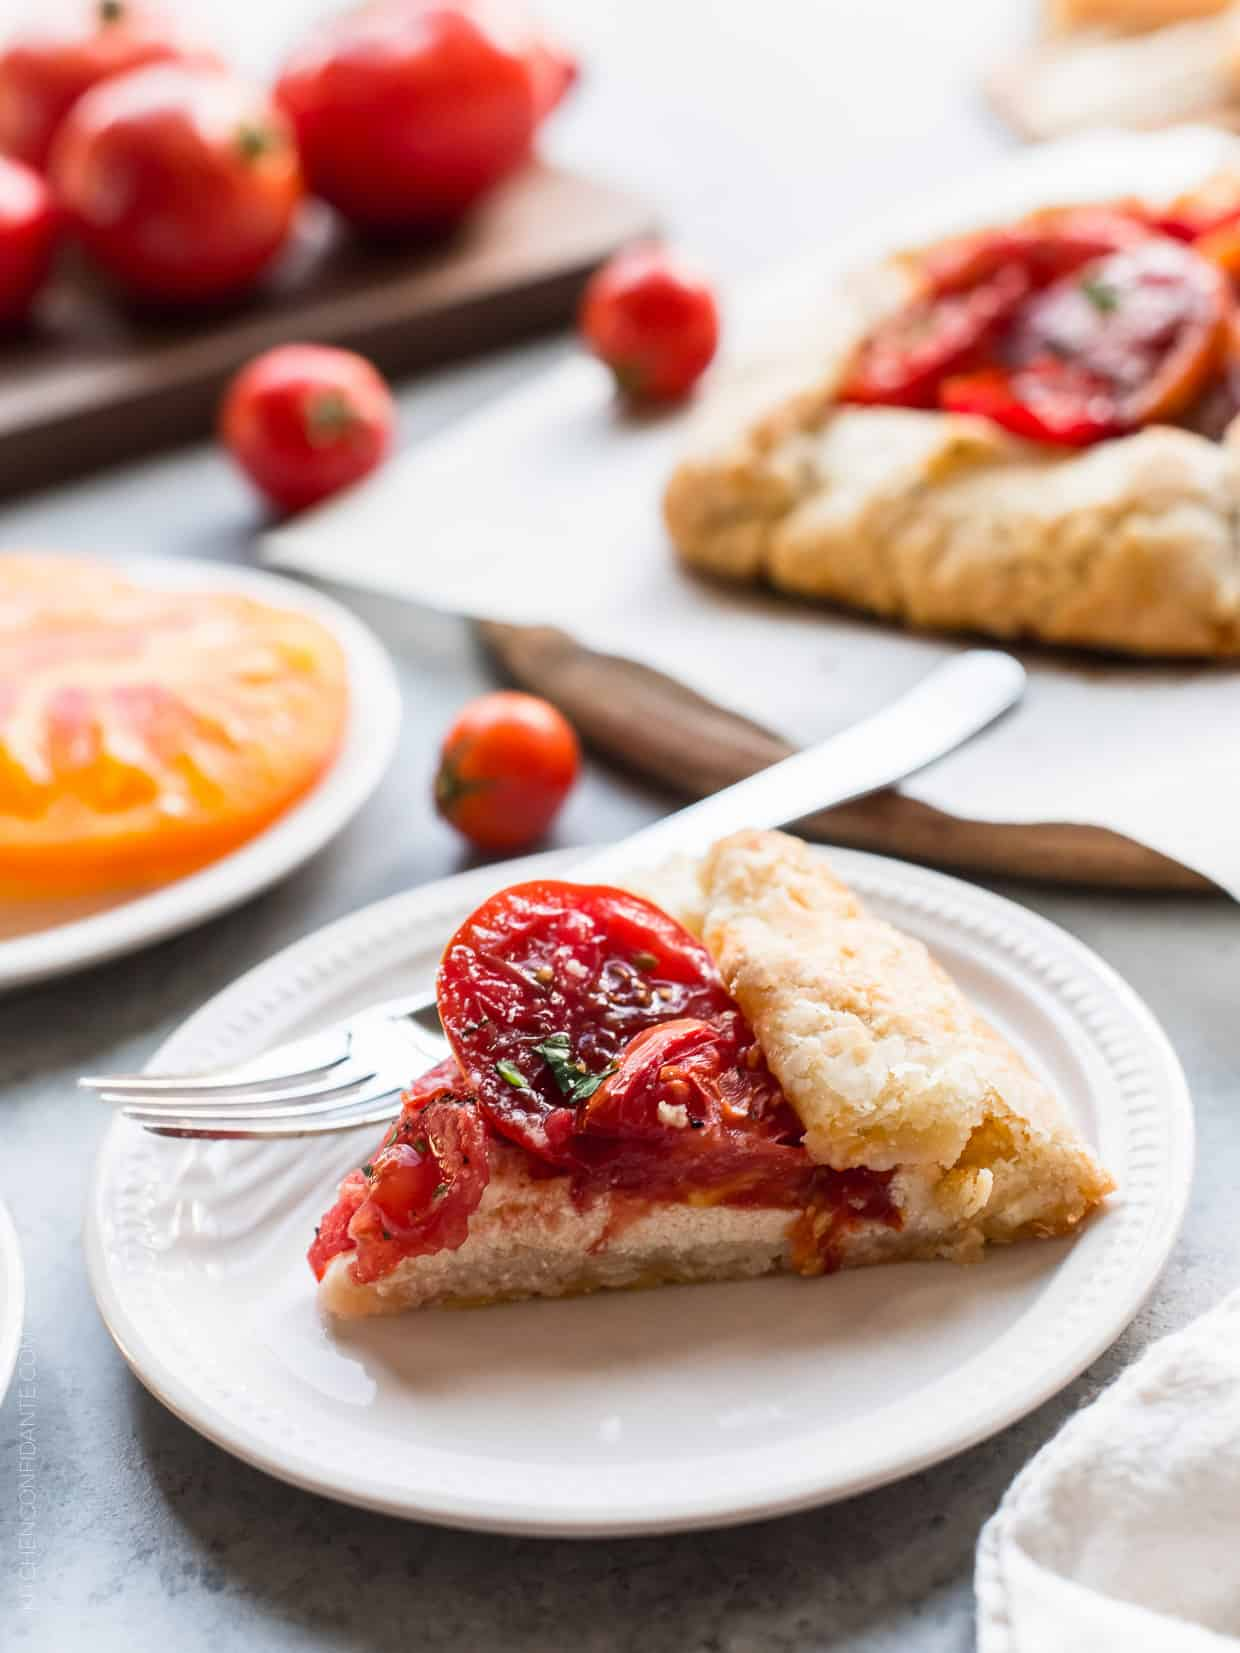 A slice of Tomato Ricotta Galette on a white place with a fork.